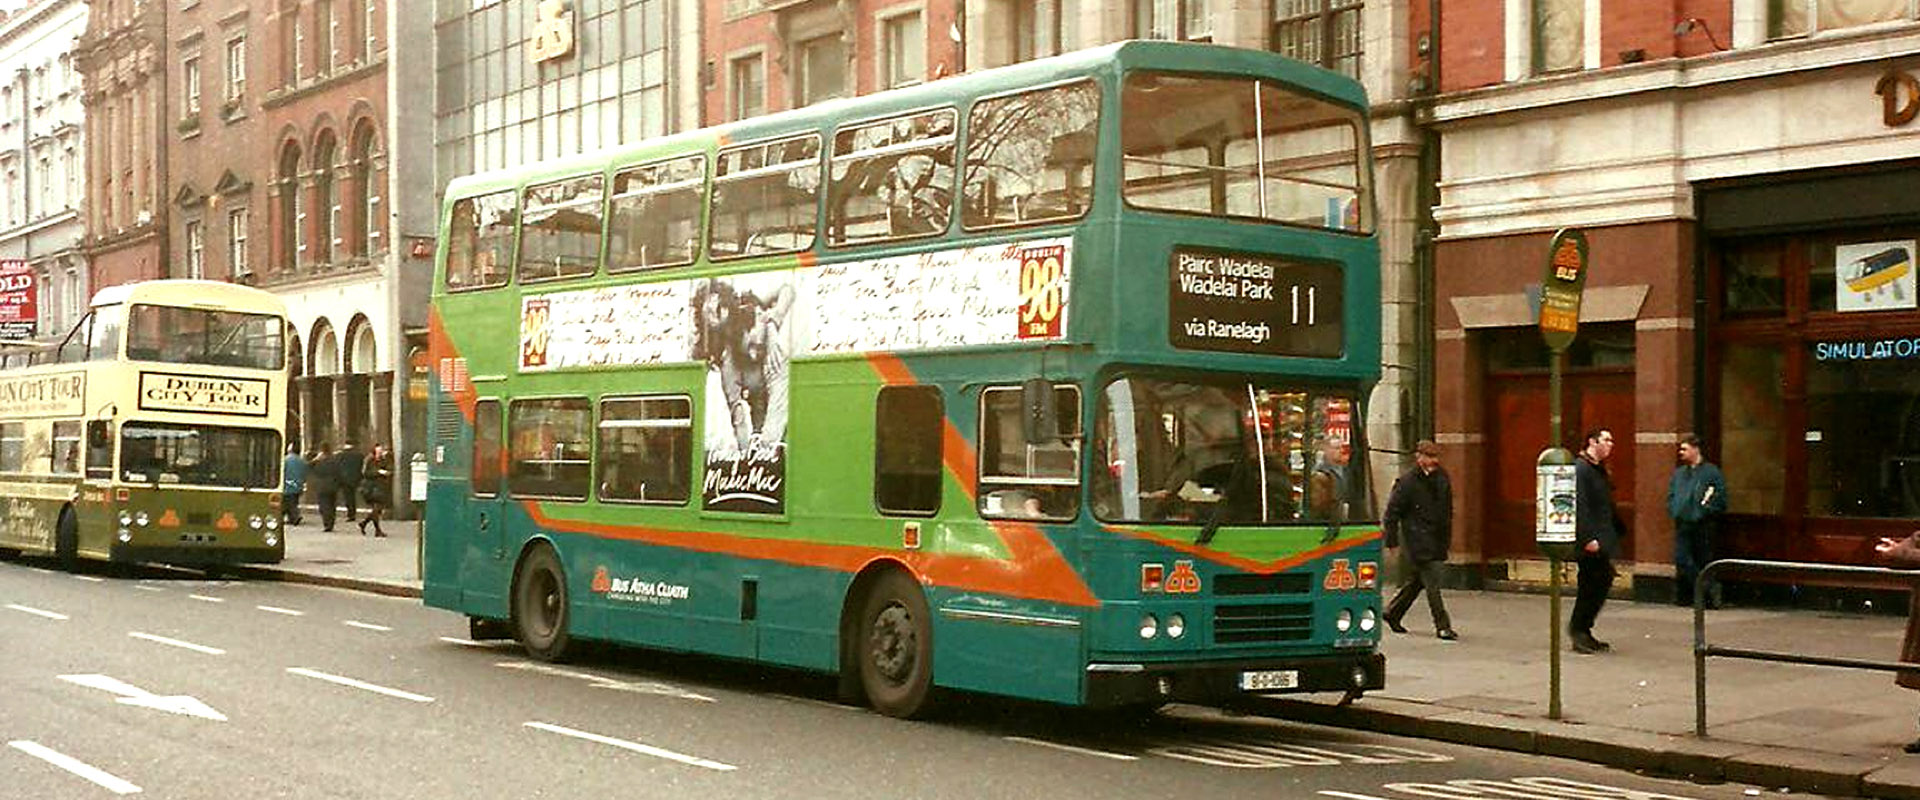 Dublin Bus on O'Connell Street with a two-tone green livery with orange.